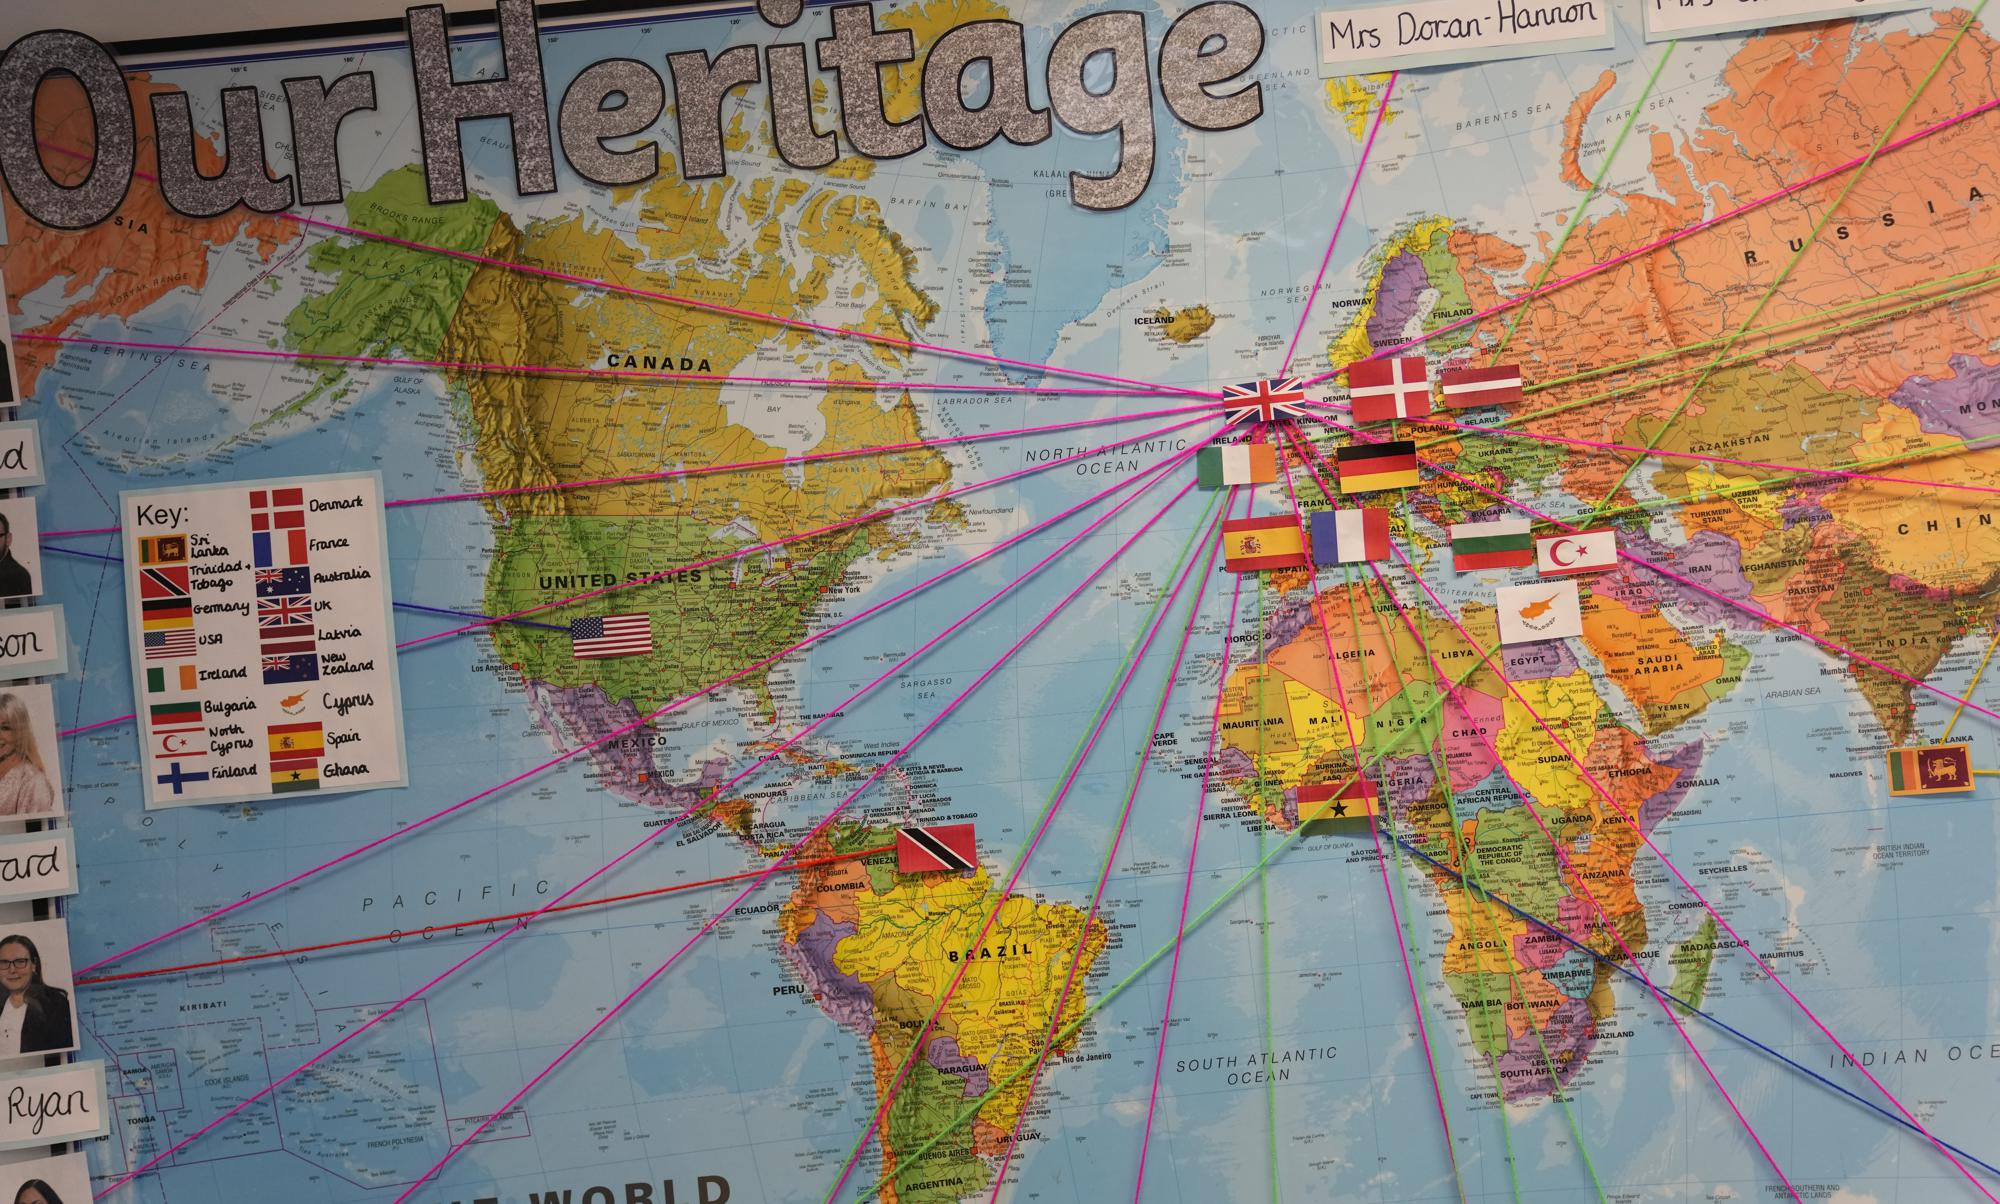 A world map showing the origins of members of staff at the Holy Family Catholic Primary School in Greenwich, London, Wednesday, May 19, 2021. Holy Family, like schools across Britain, is racing to offset the disruption caused by COVID-19, which has hit kids from low-income and ethnic minority families hardest. (AP Photo/Alastair Grant)